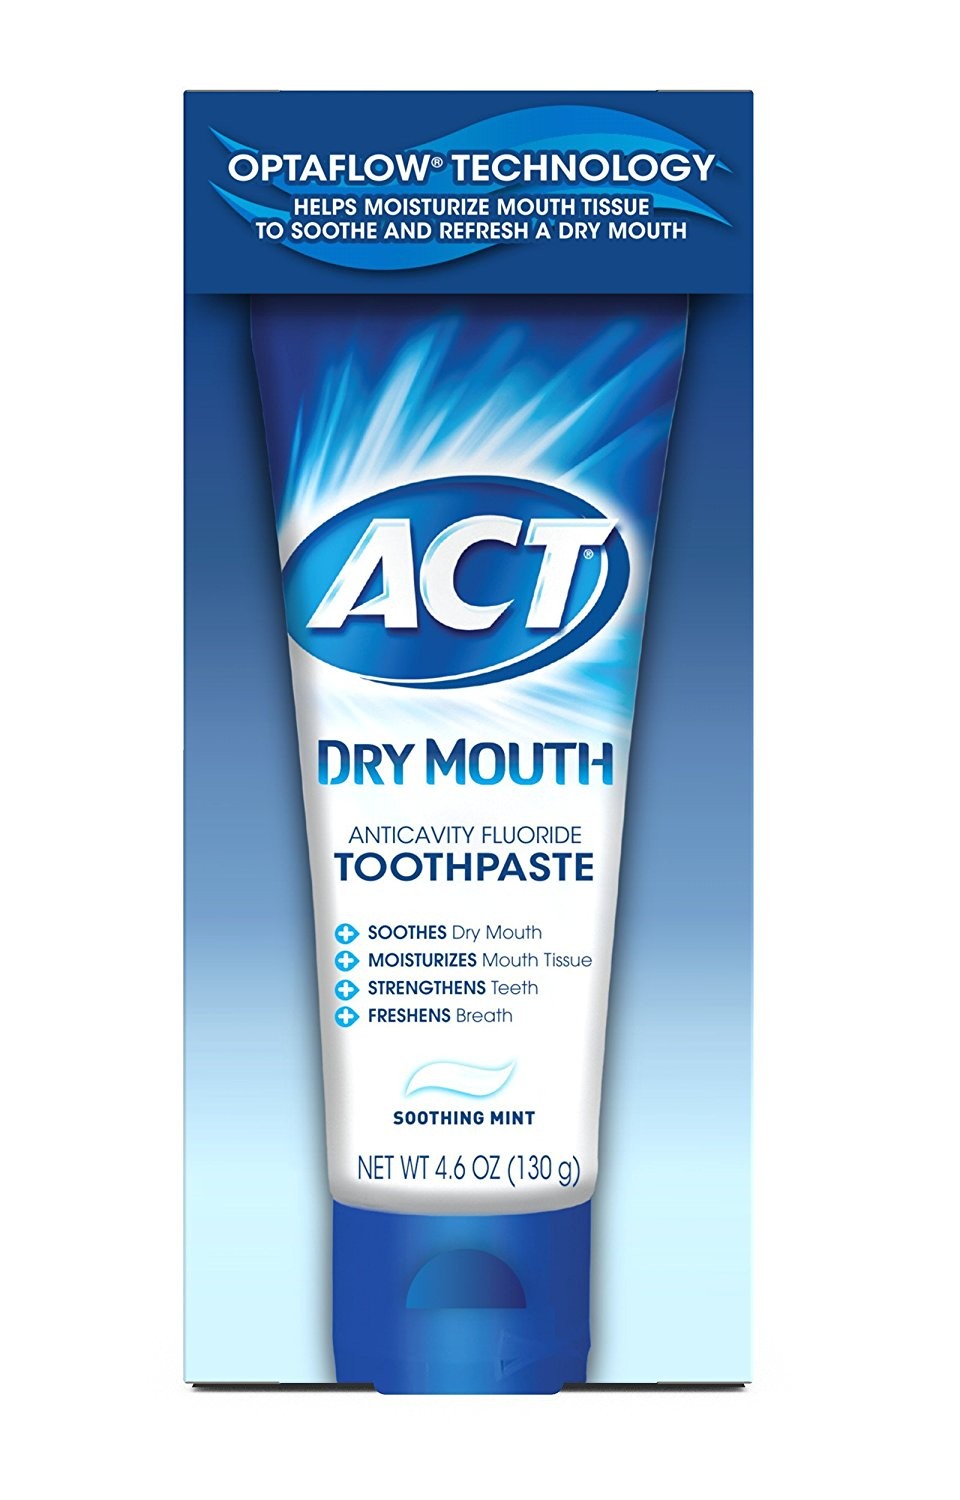 ACT Dry Mouth Anticavity Fluoride Toothpaste With Xylitol - 4.6 Oz (130 g)